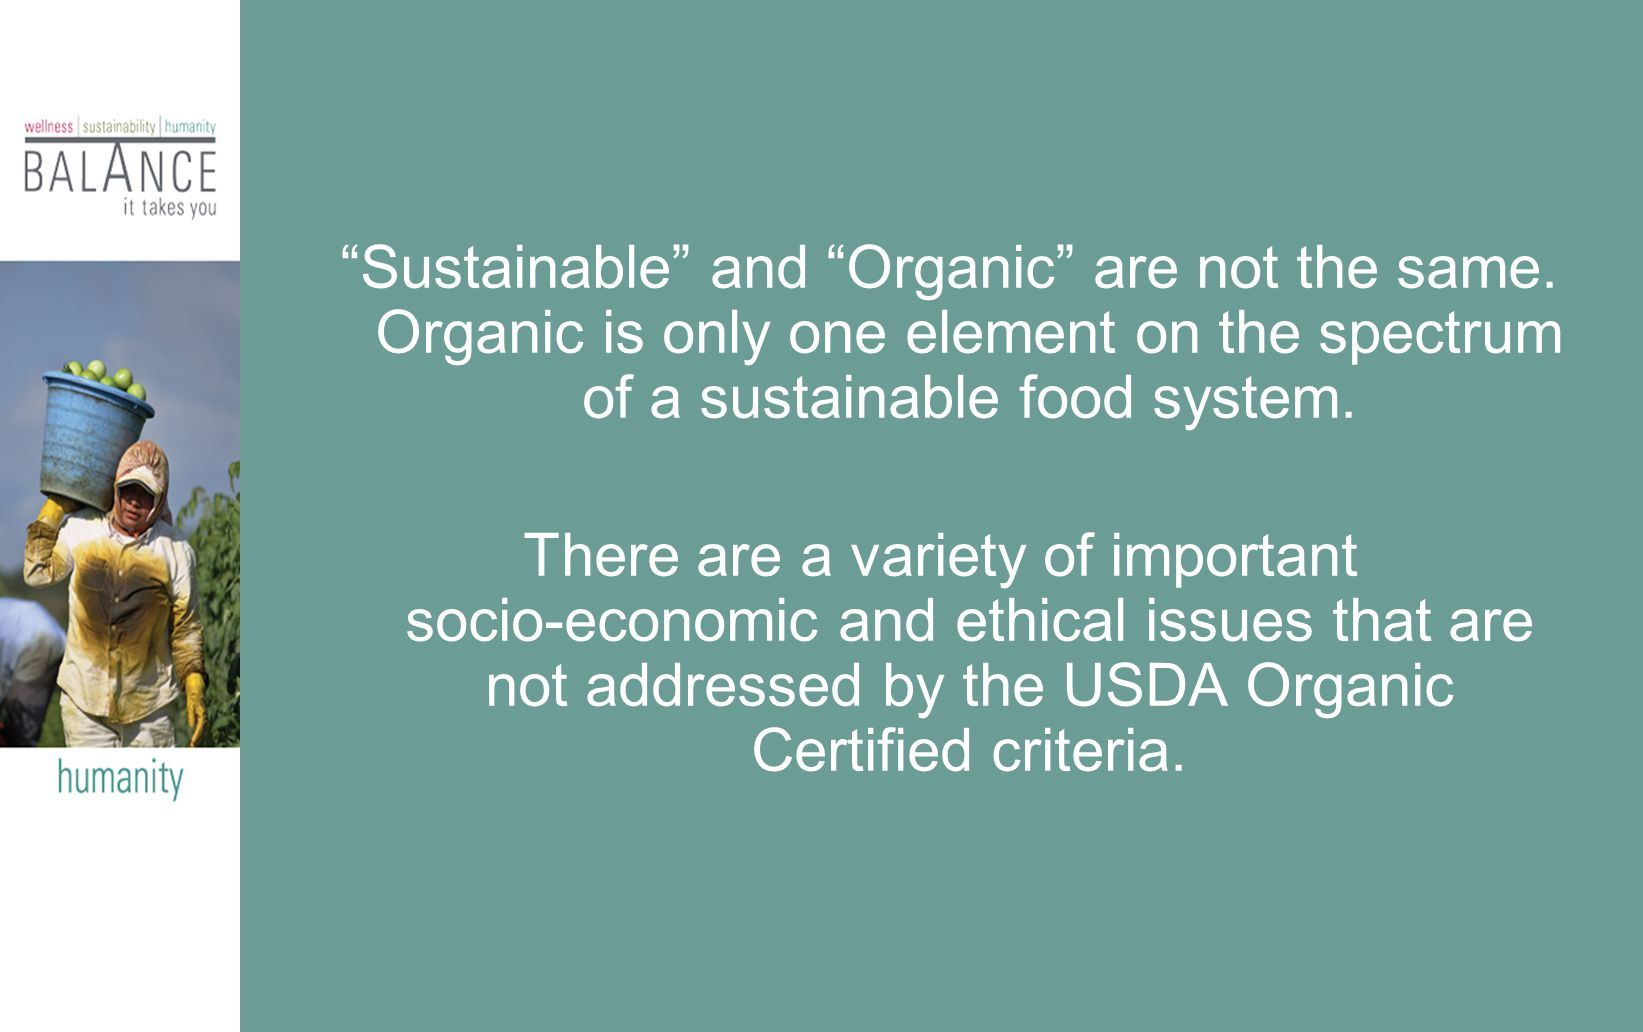 Sustainable and Organic are not the same.